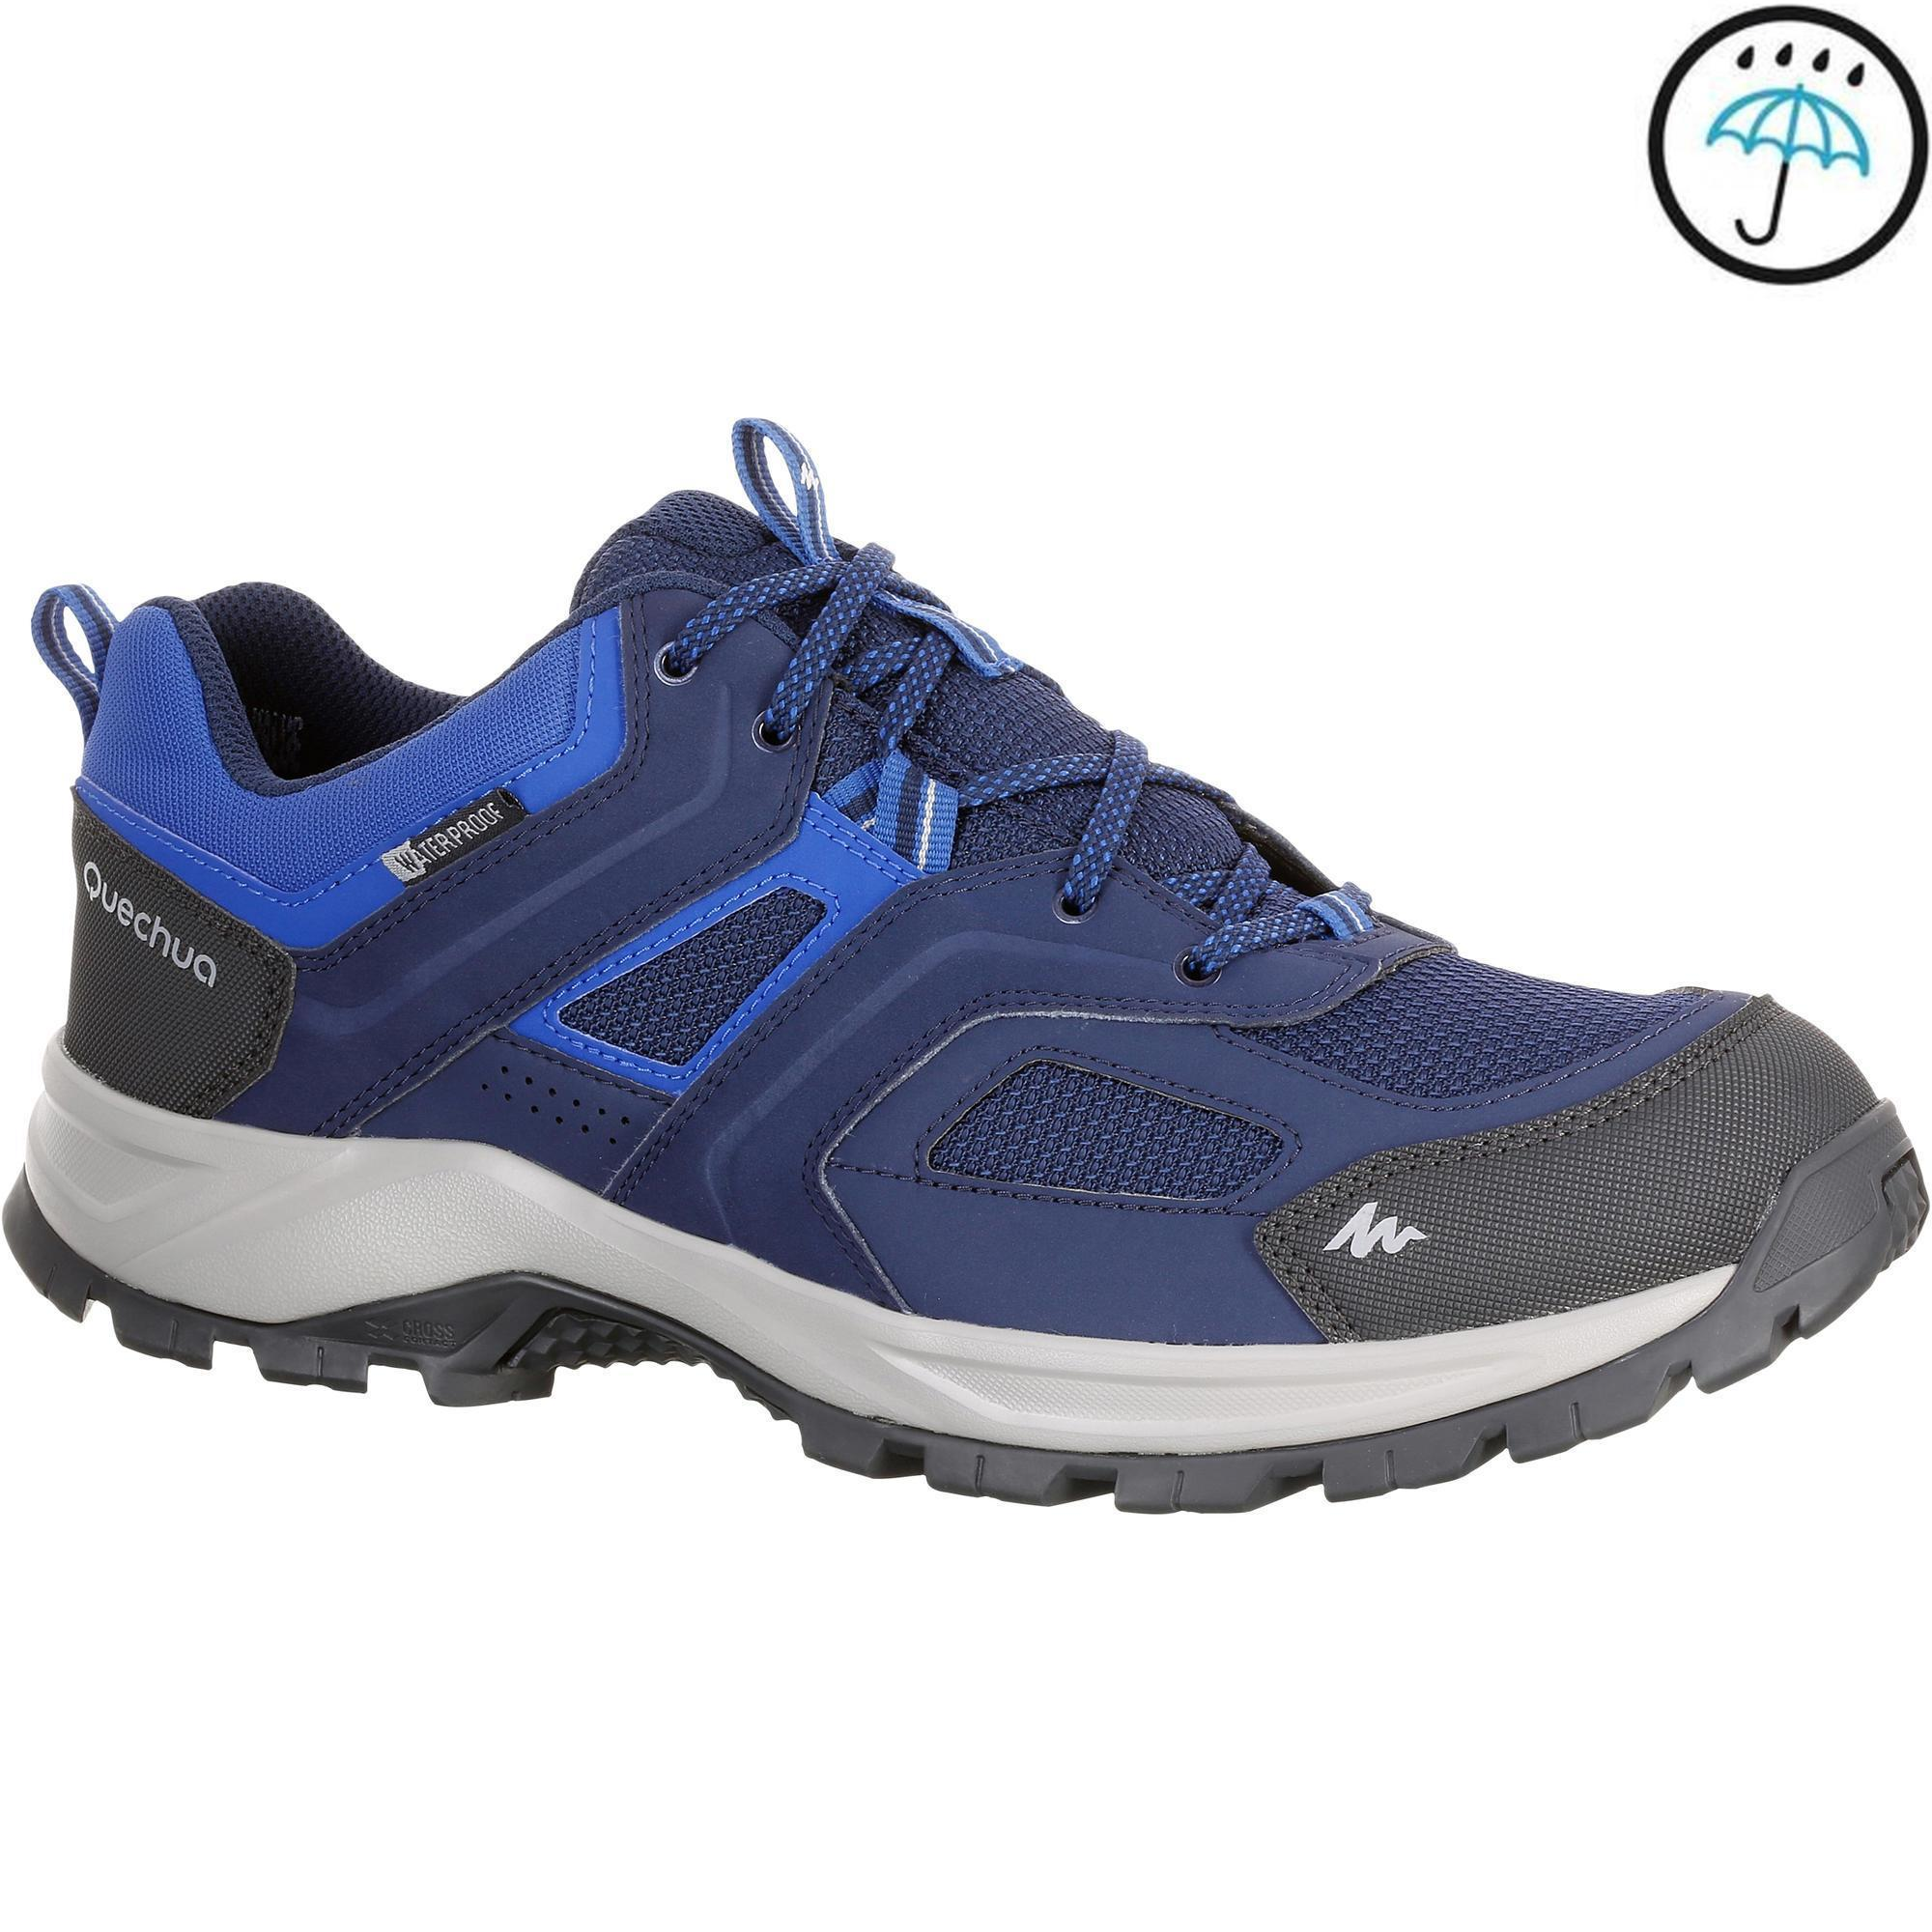 Mh100 Waterproof Men S Hiking Shoes Blue Quechua